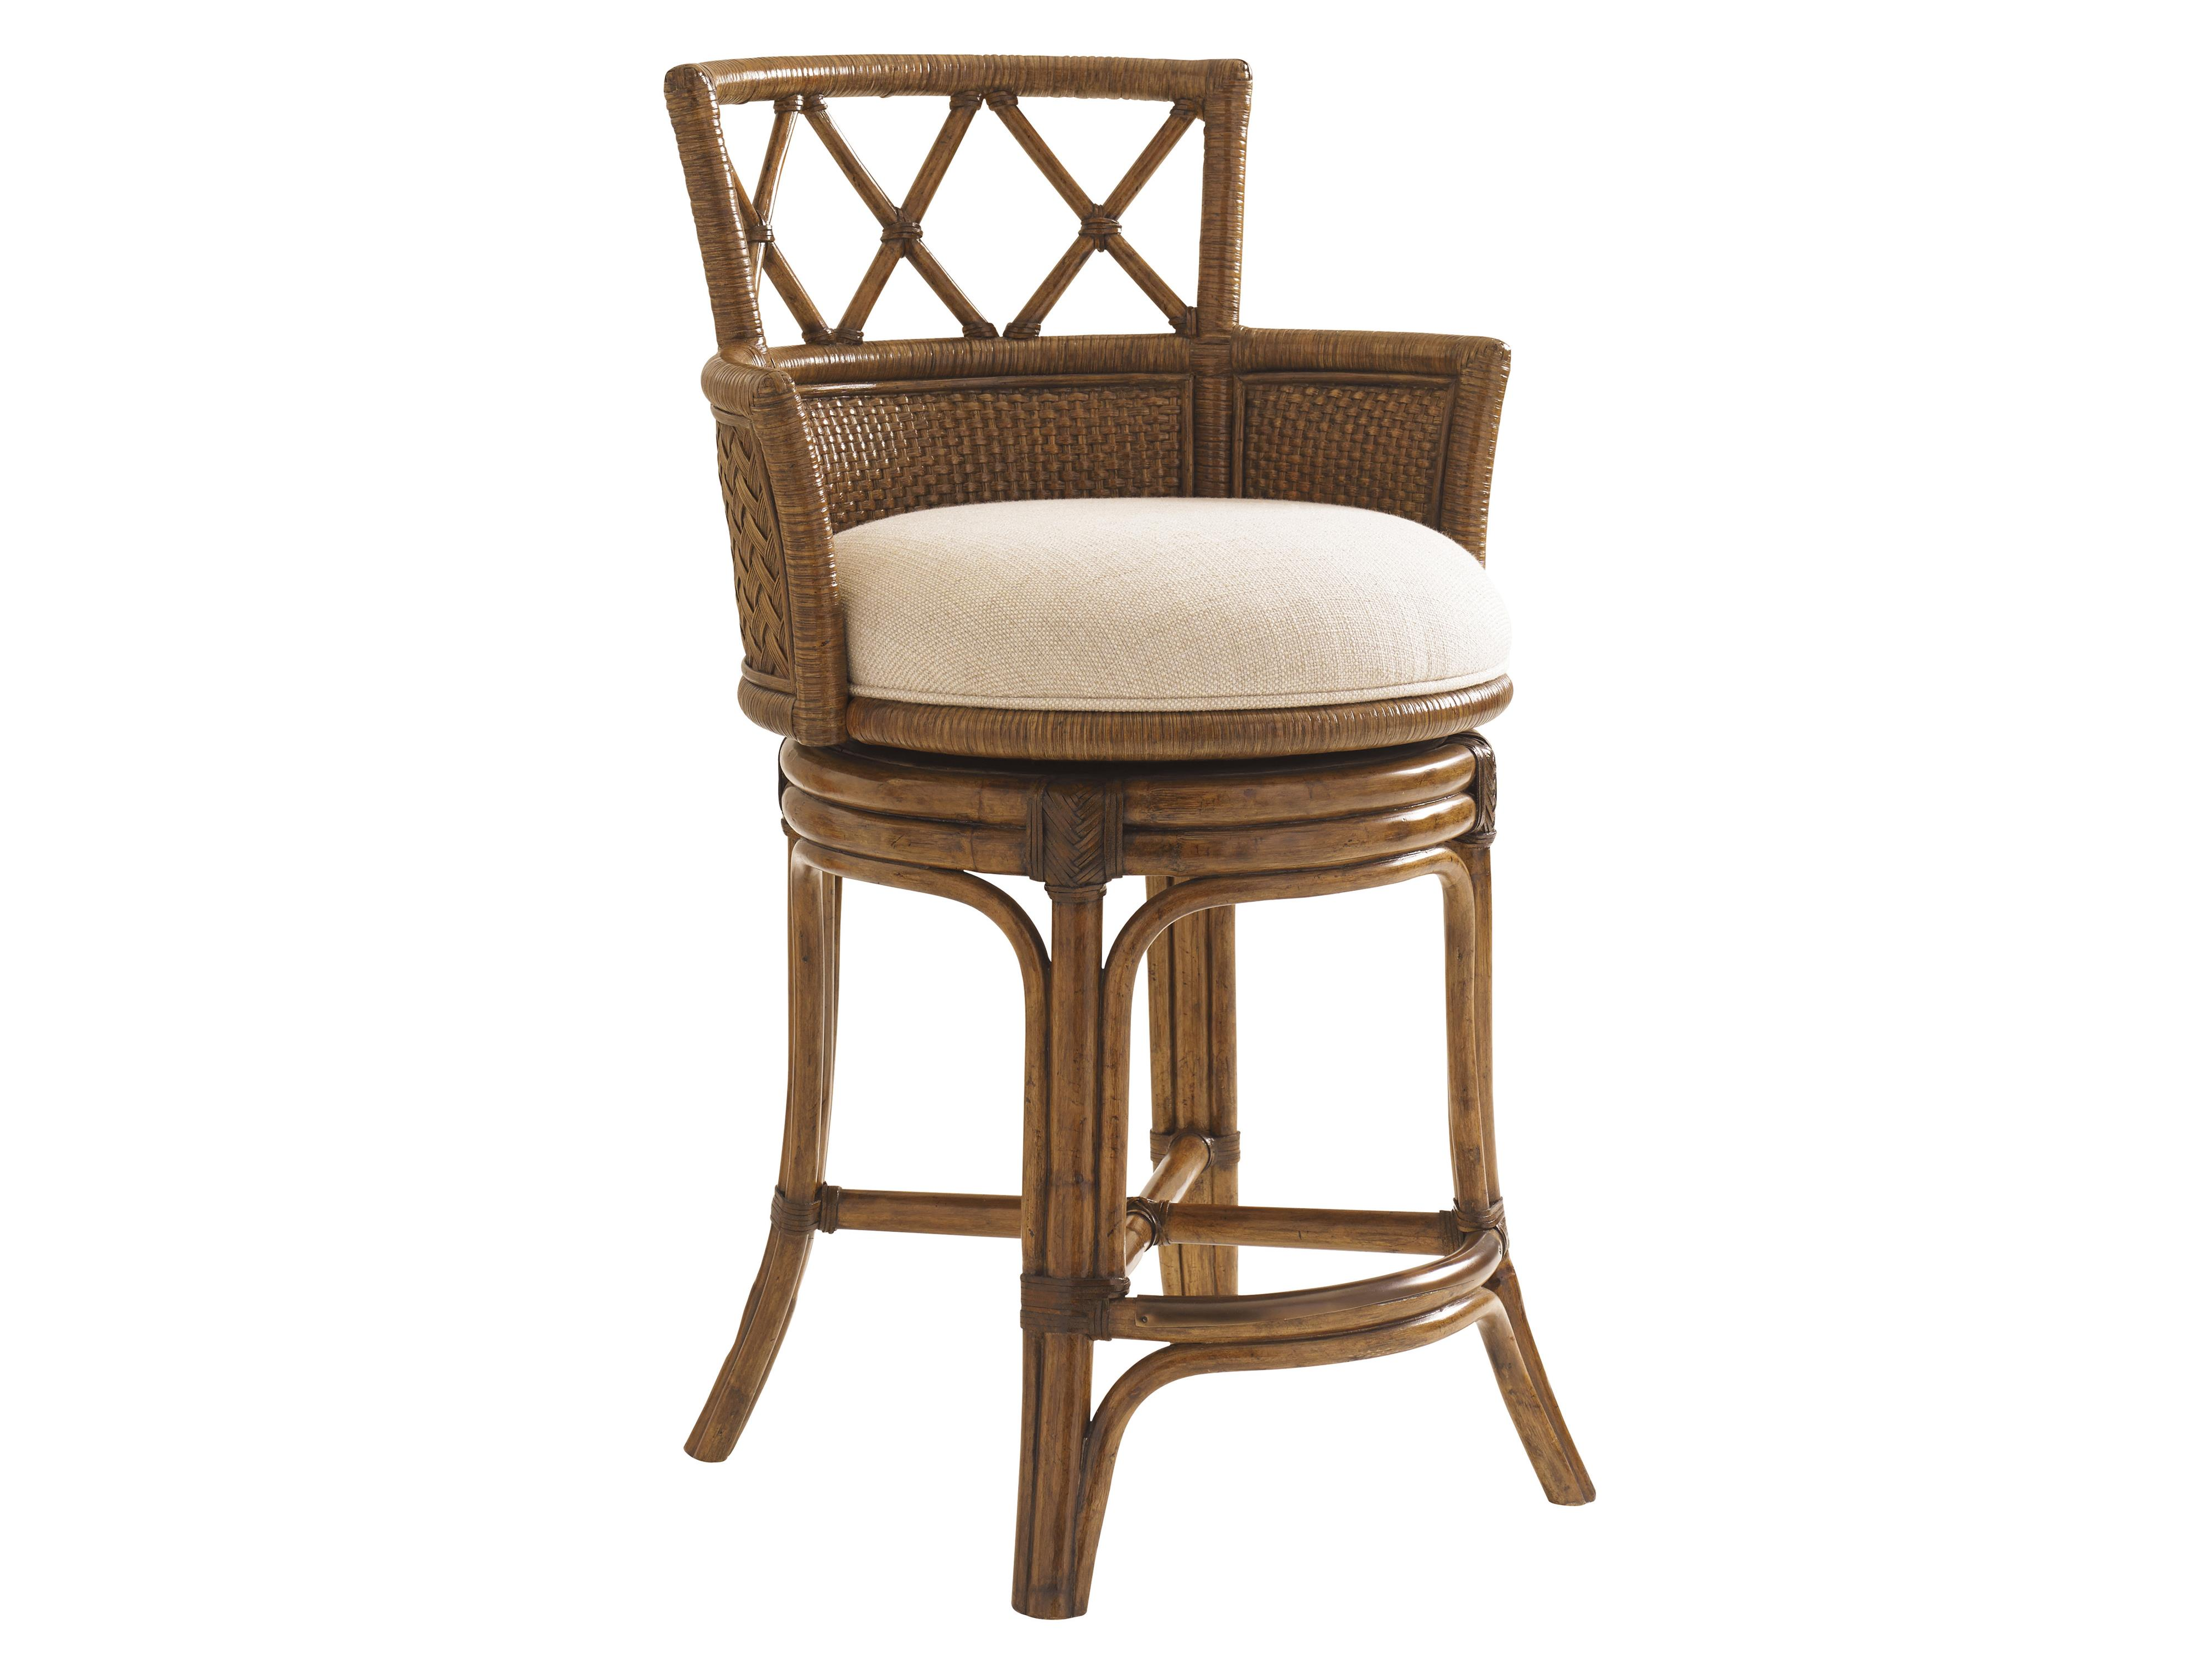 Bali Hai Customizable Kamala Bay Swivel Counter Stool by Tommy Bahama Home at Baer's Furniture